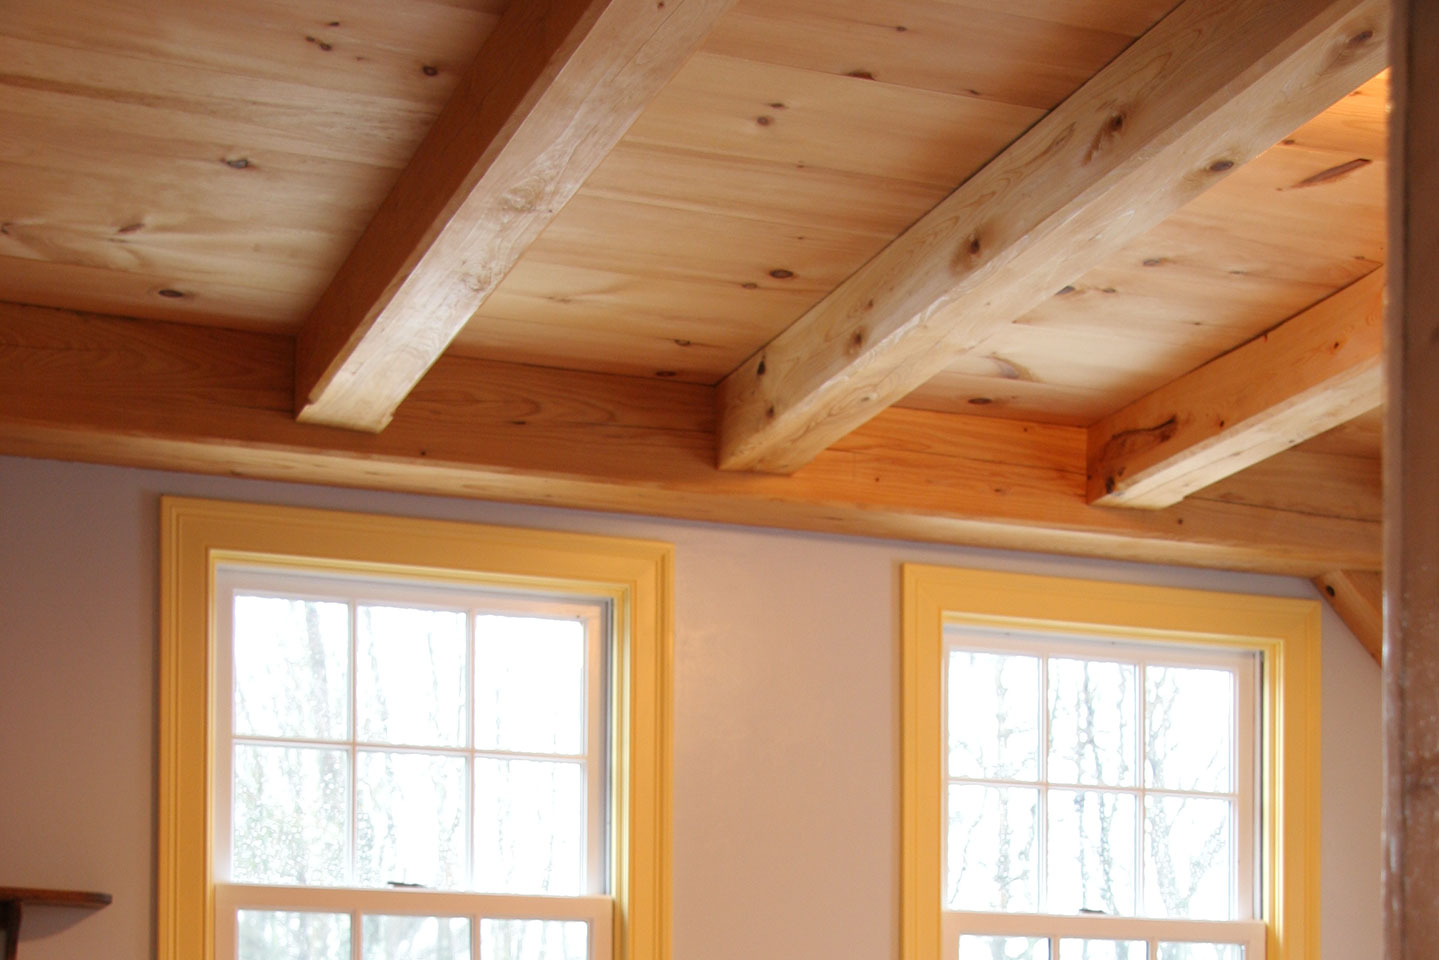 Barn-and-Shed-Siding-Indoors-at-WR-Robinson-Lumber.jpg